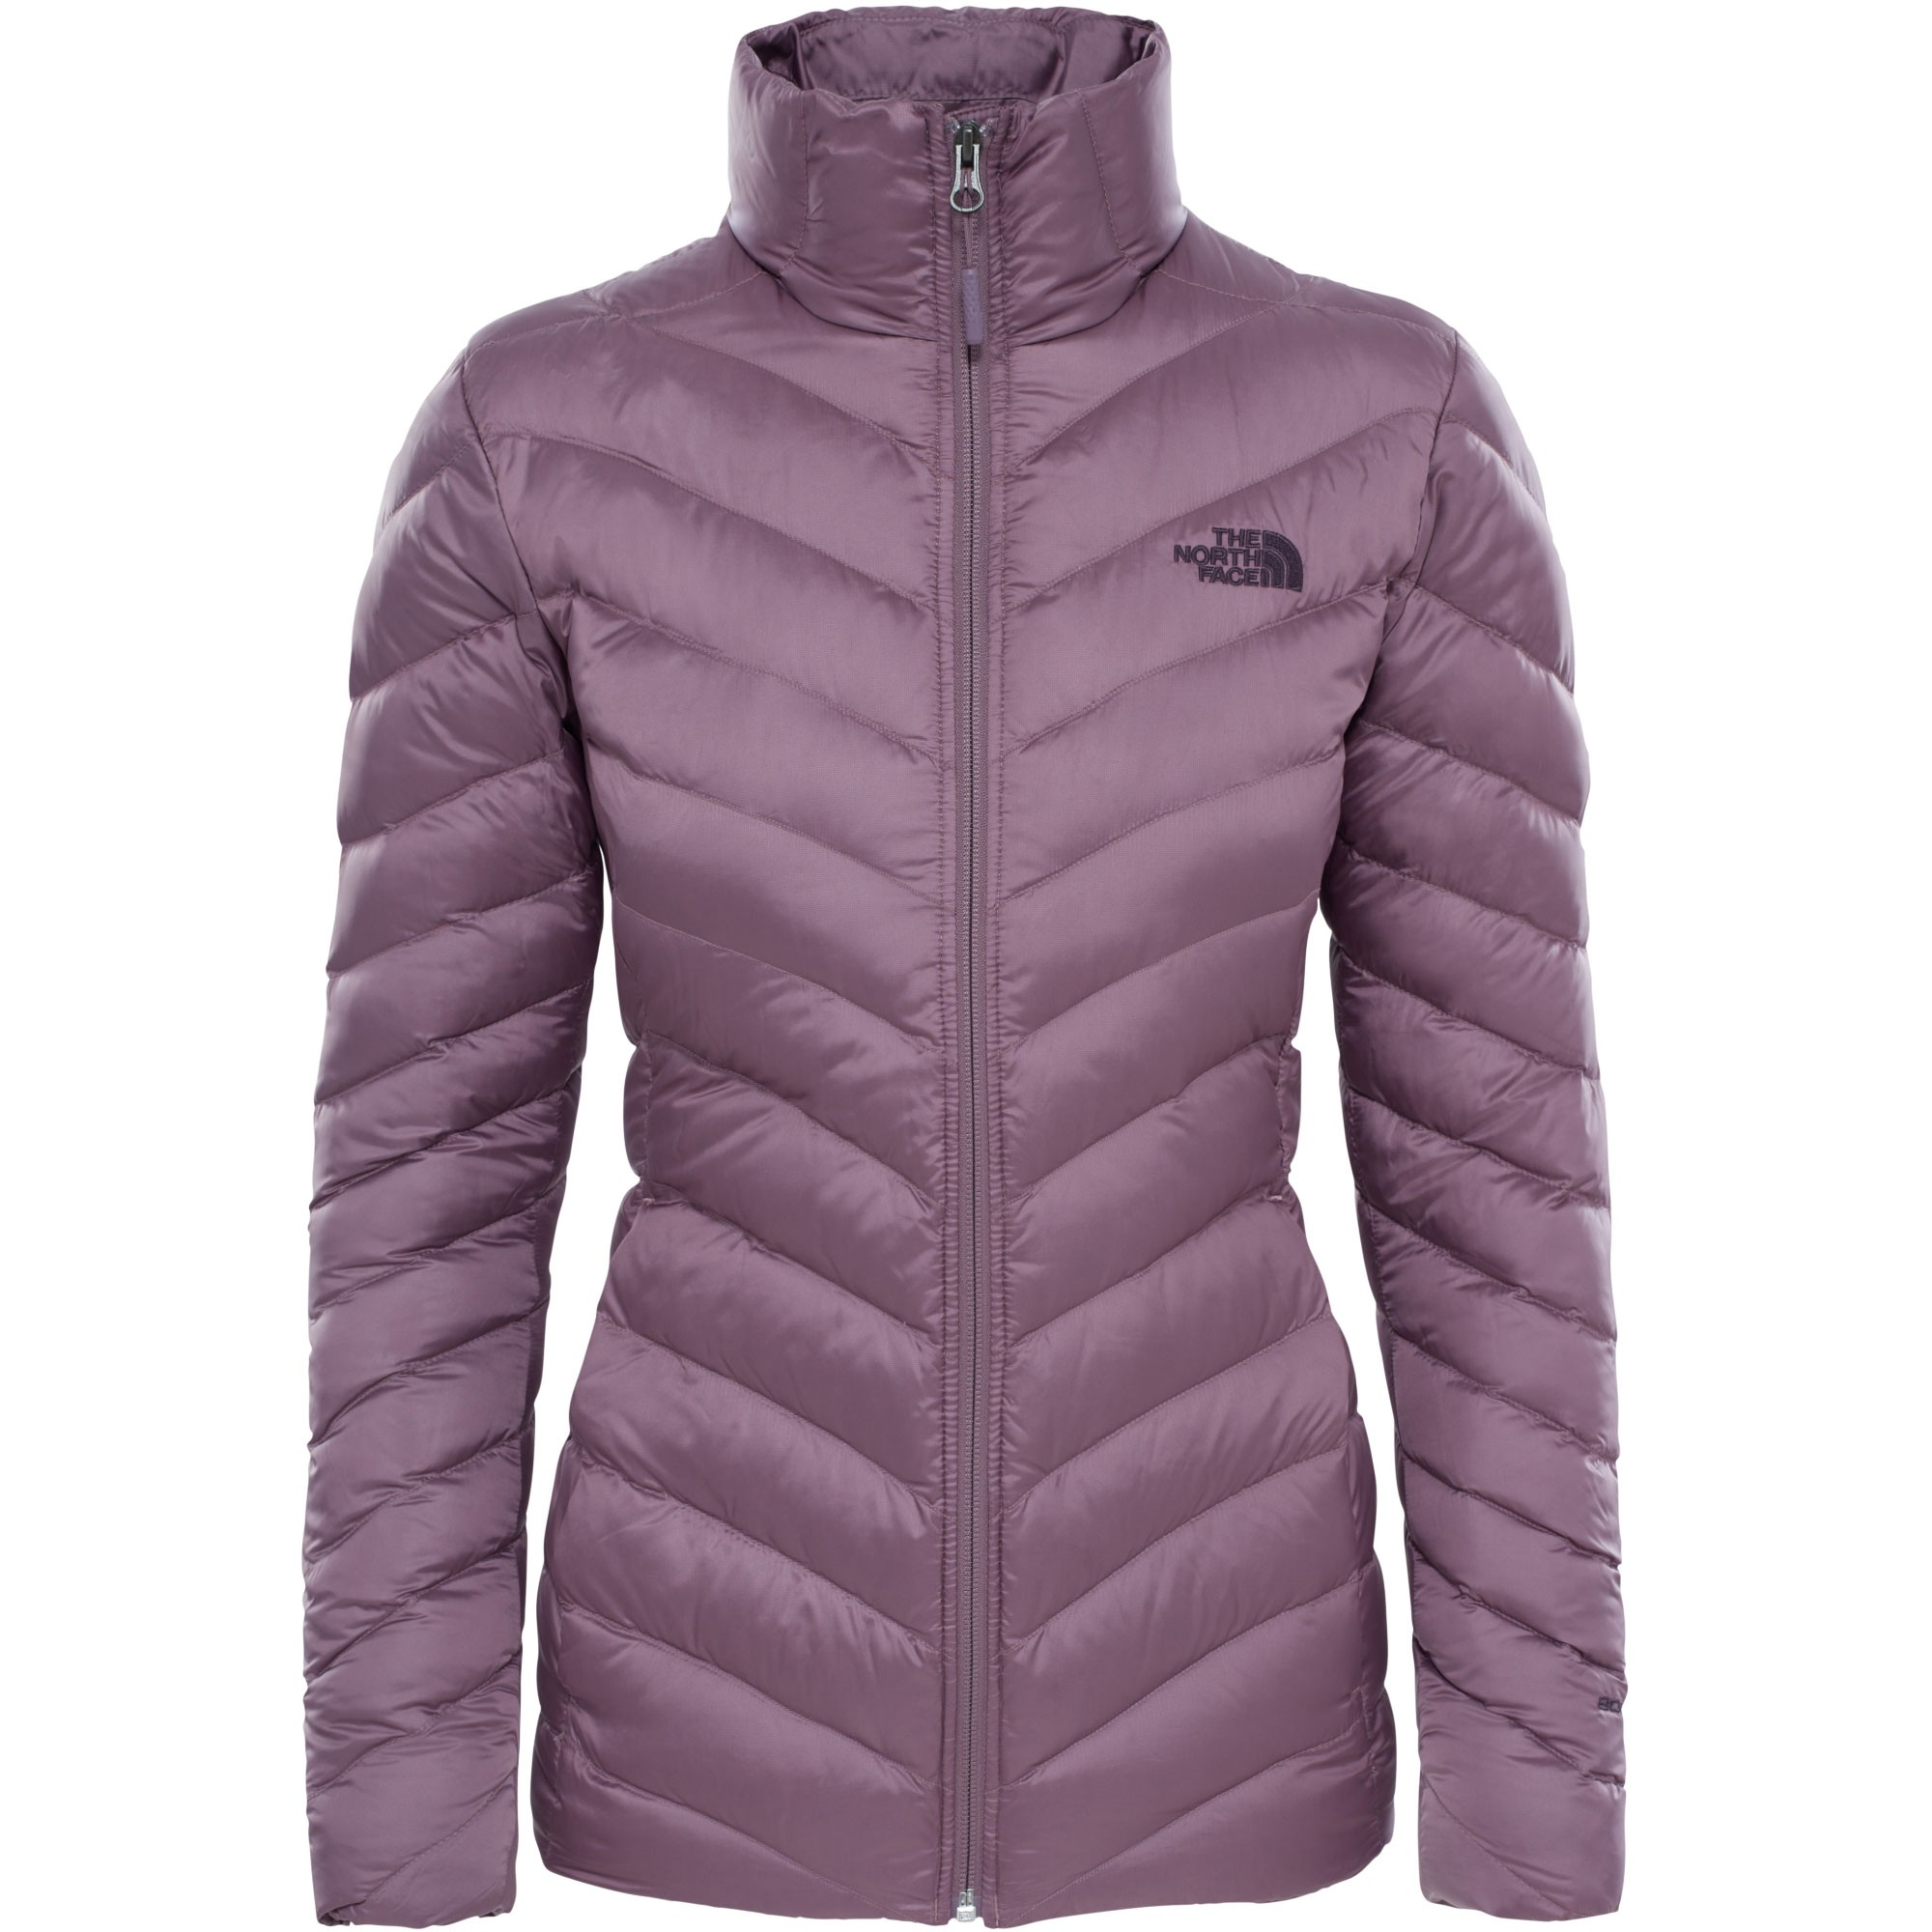 The-North-Face-Womens-Trevail-700-Jacket-Black-Plum-0-W17